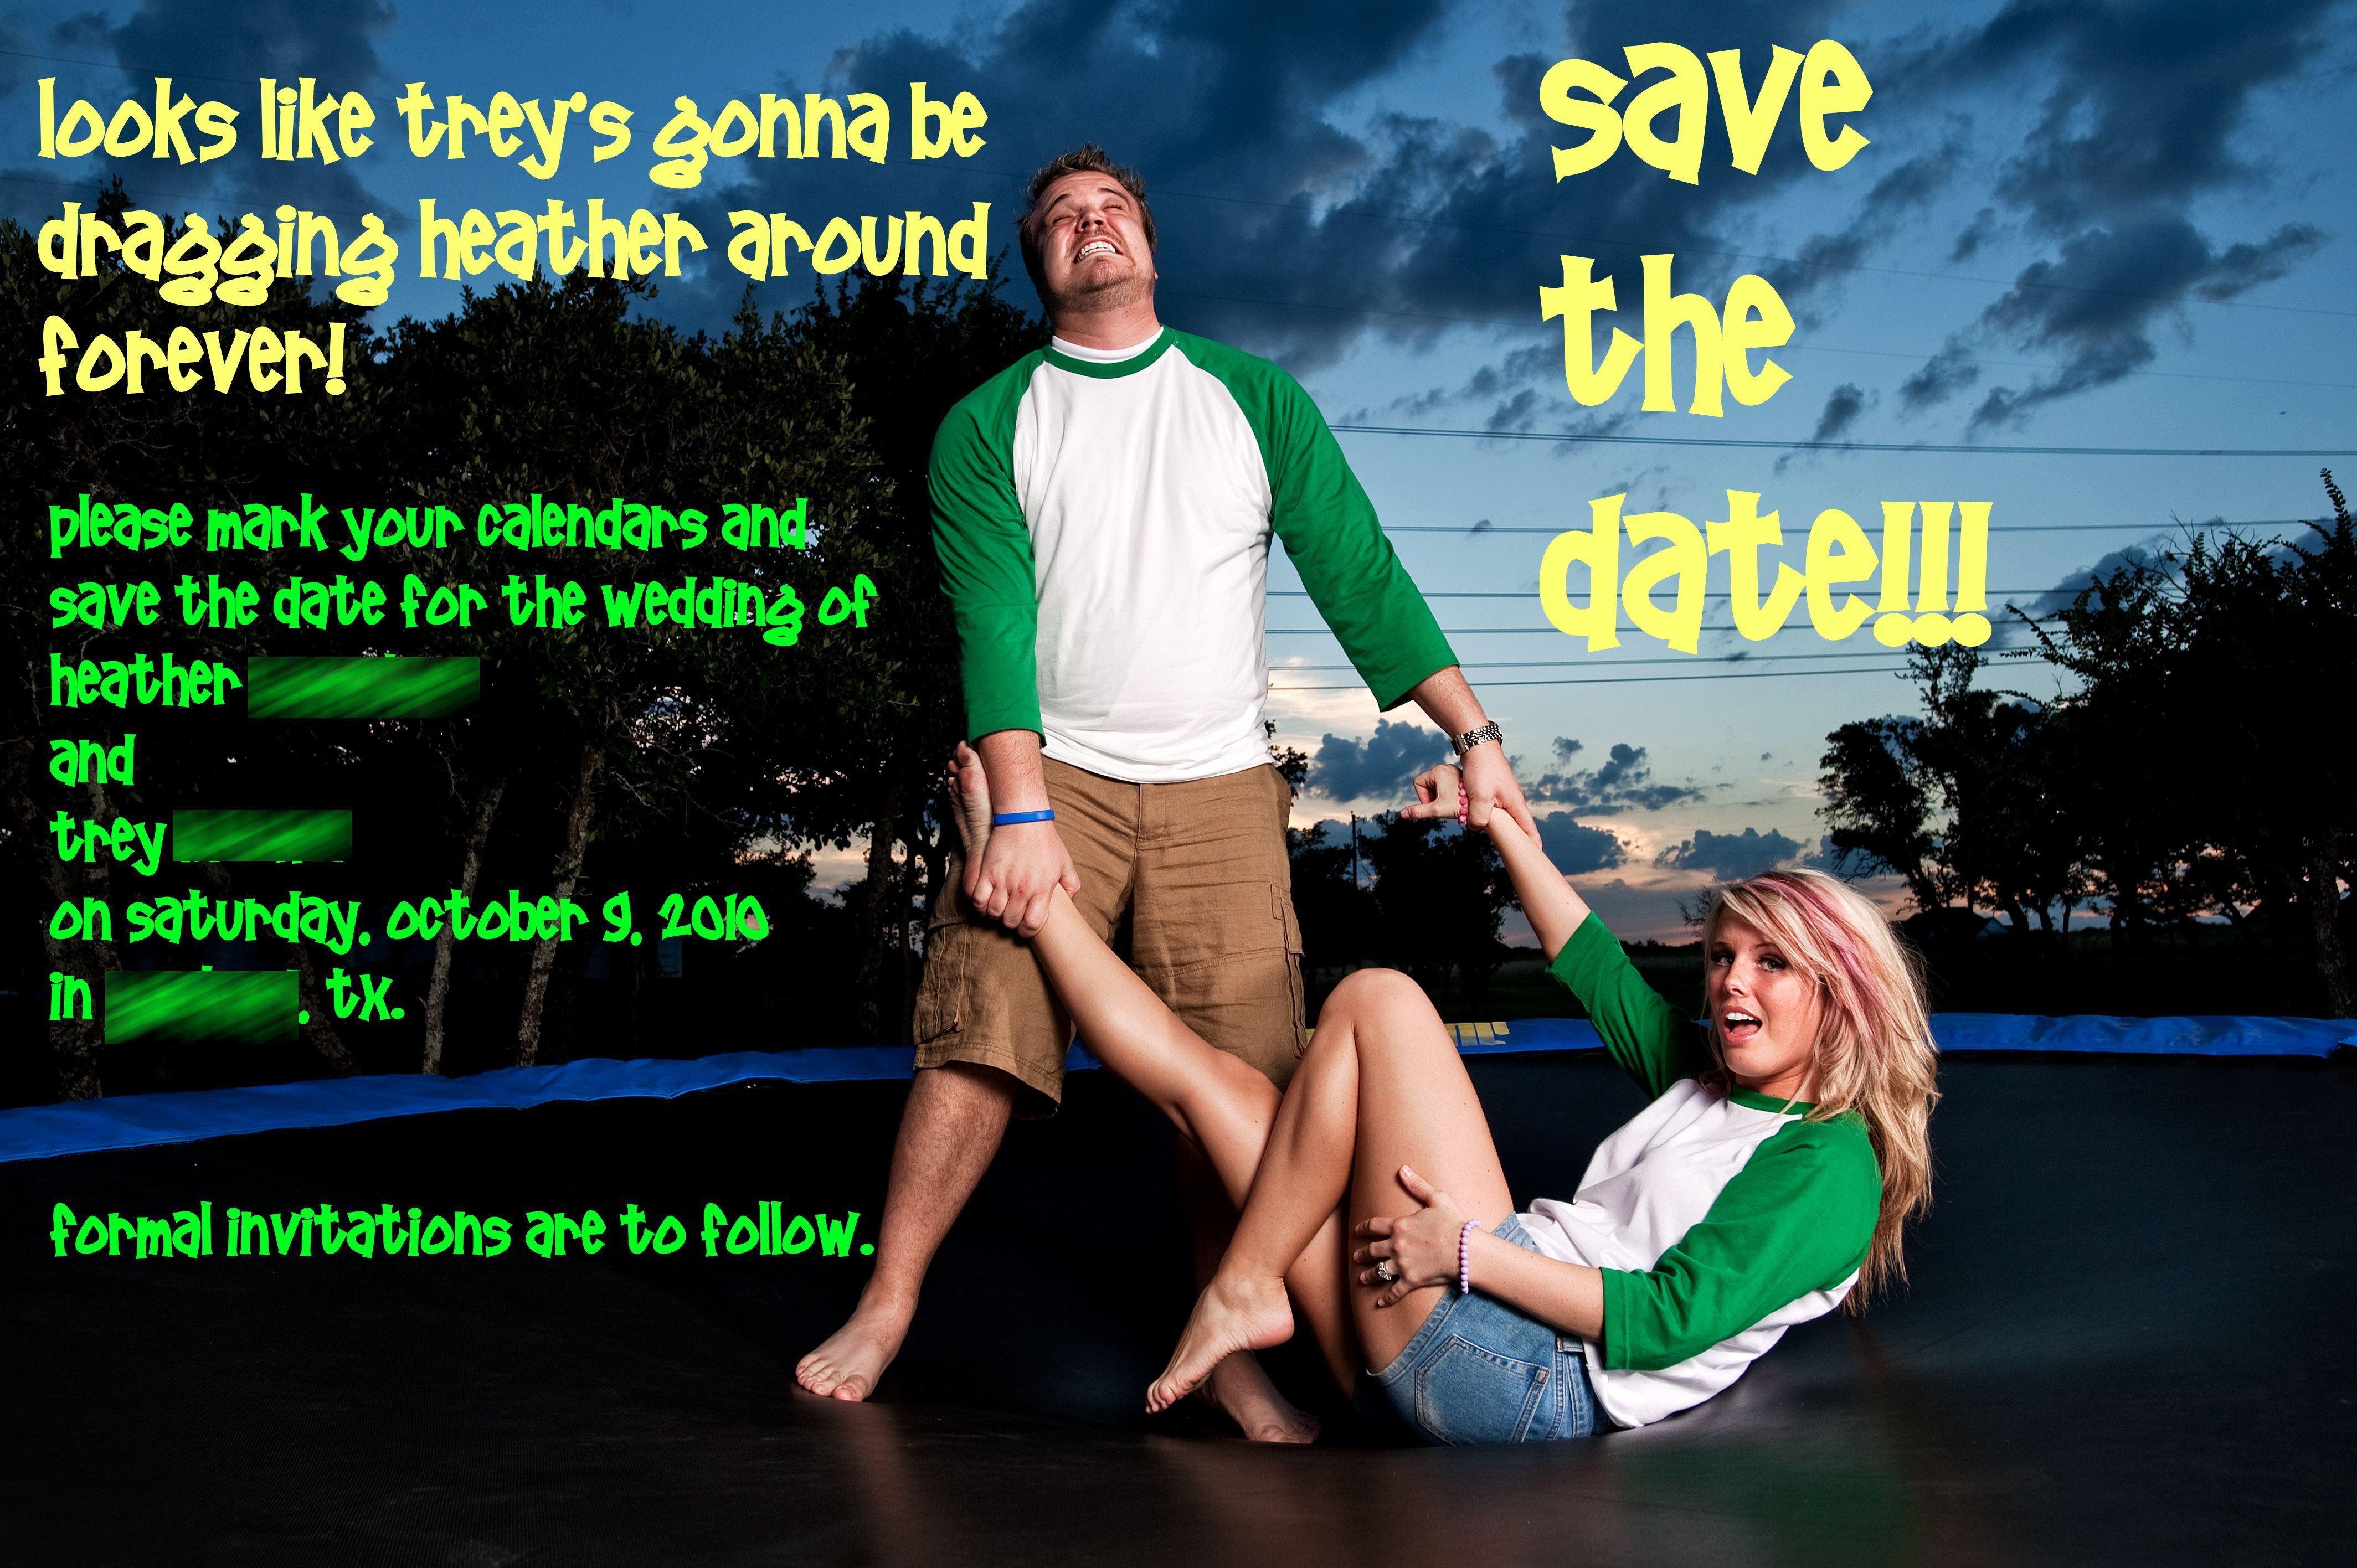 Photos, The, Engagement, Save, Date